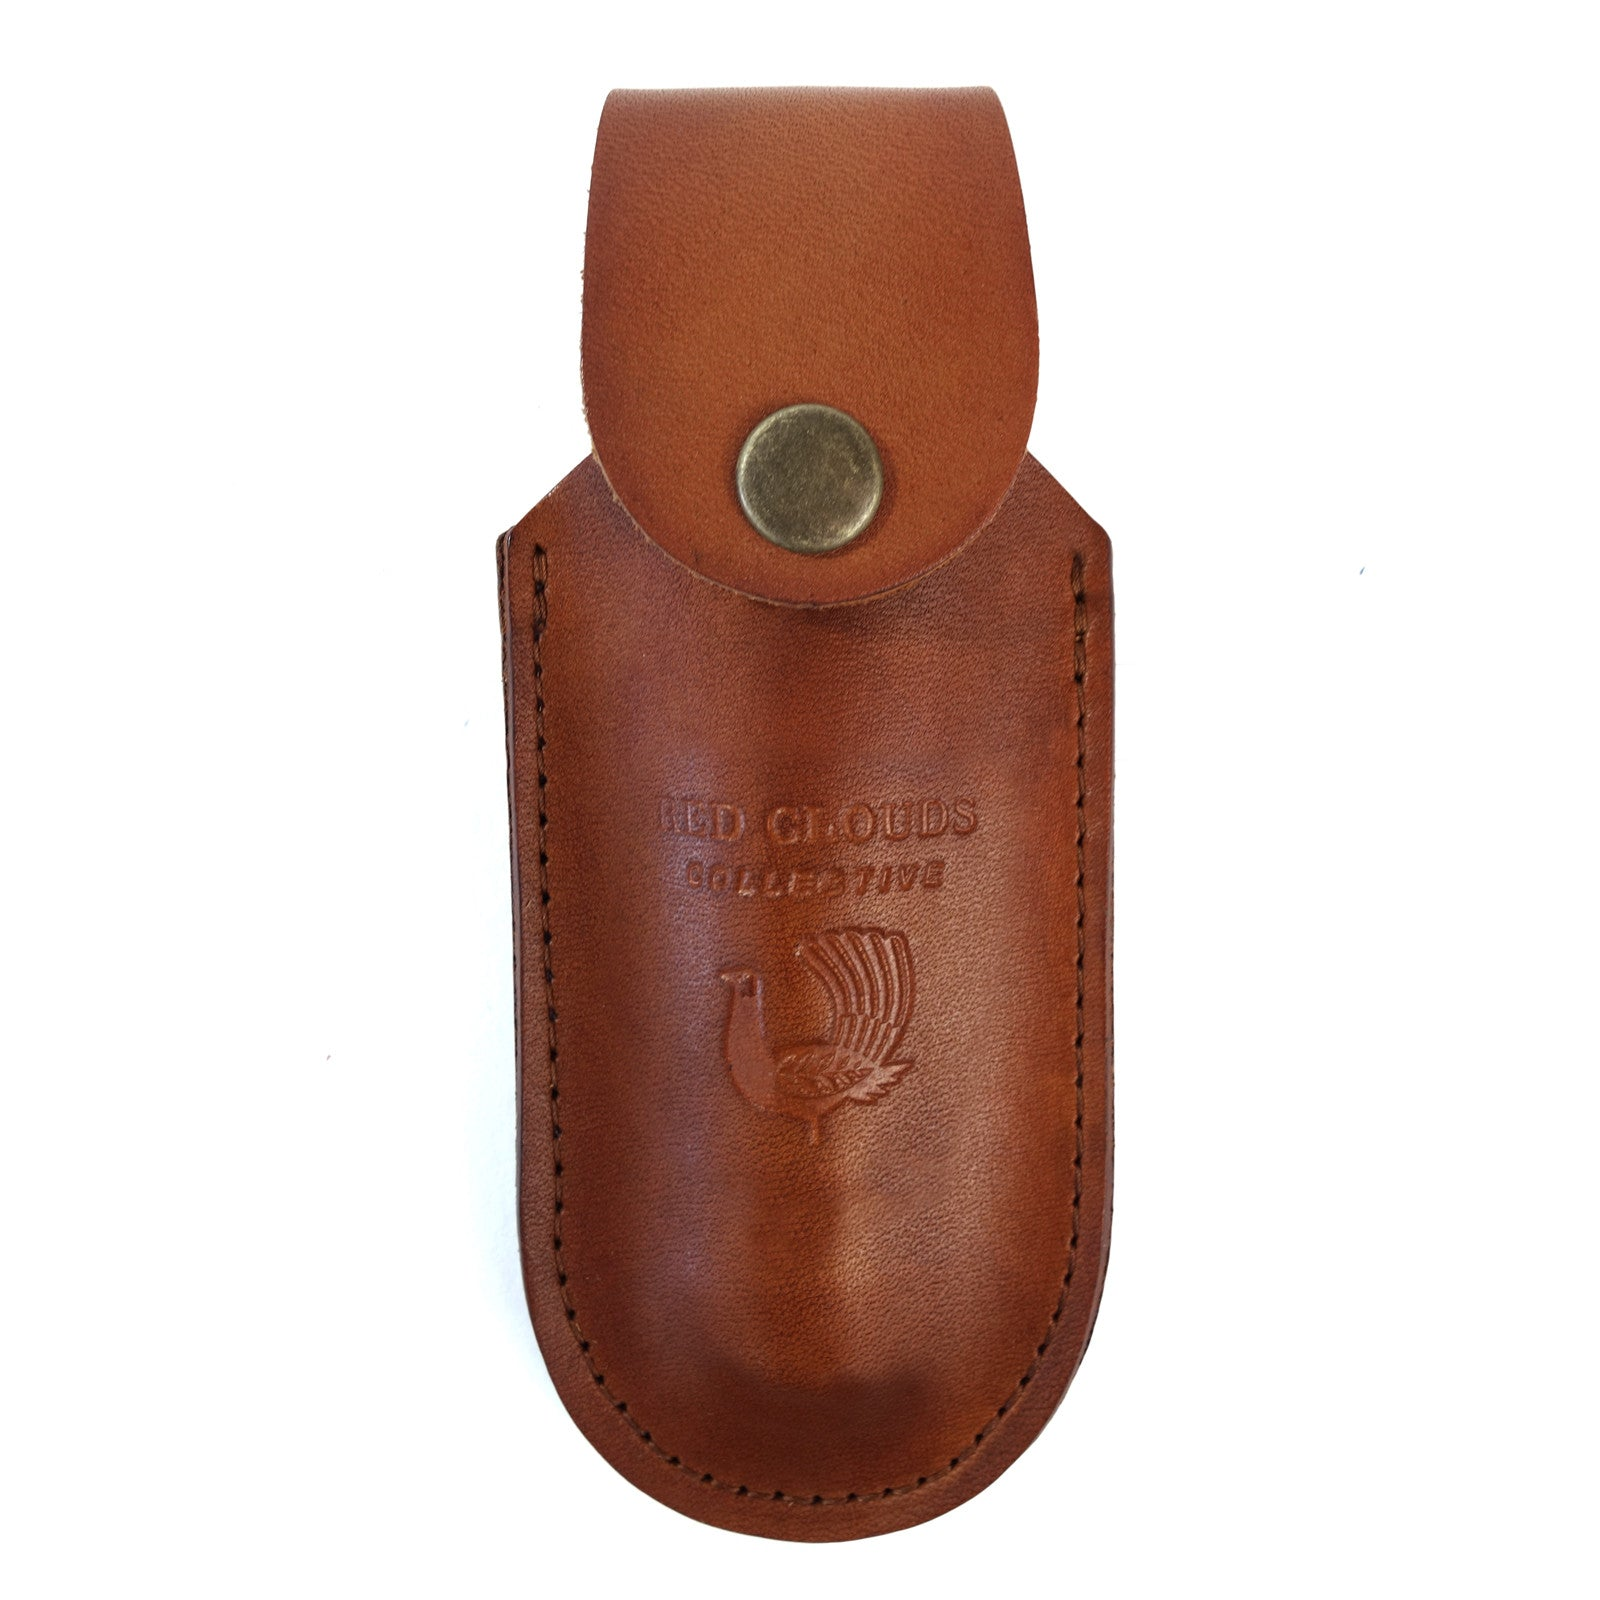 Knife sheath, knife holder, knife holster, leather knife sheath, opinel sheath, sheath, leather sheath, opinel leather holder, pocket knife sheath